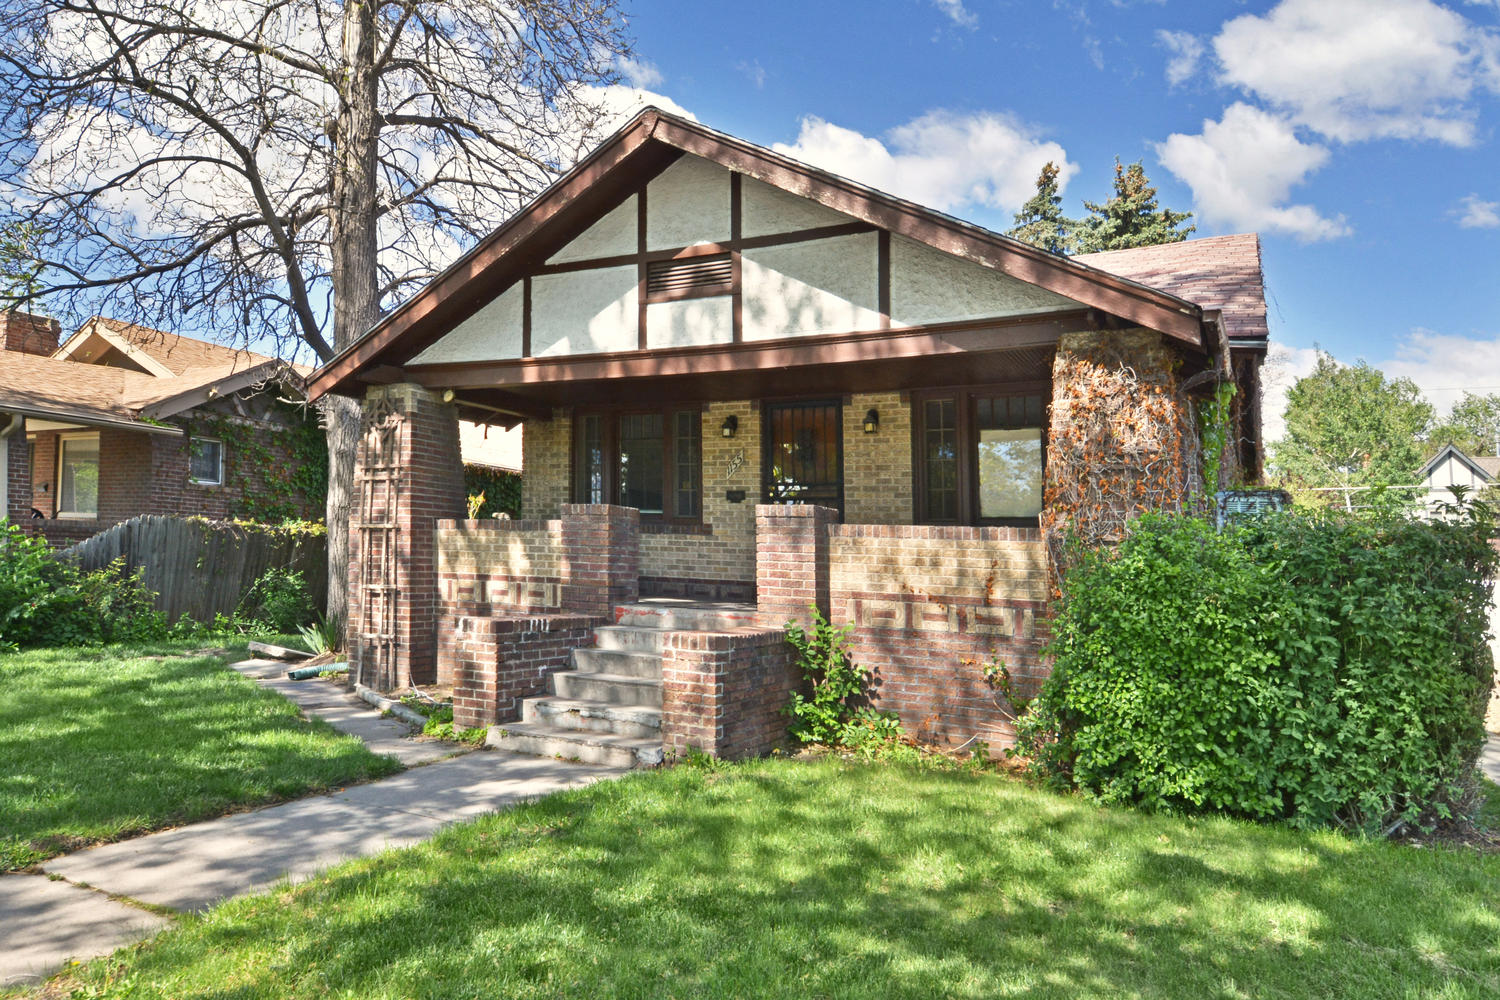 Single Family Home for Sale at Charming Bungalow Across From Washington Park 1155 S Downing St Denver, Colorado, 80210 United States